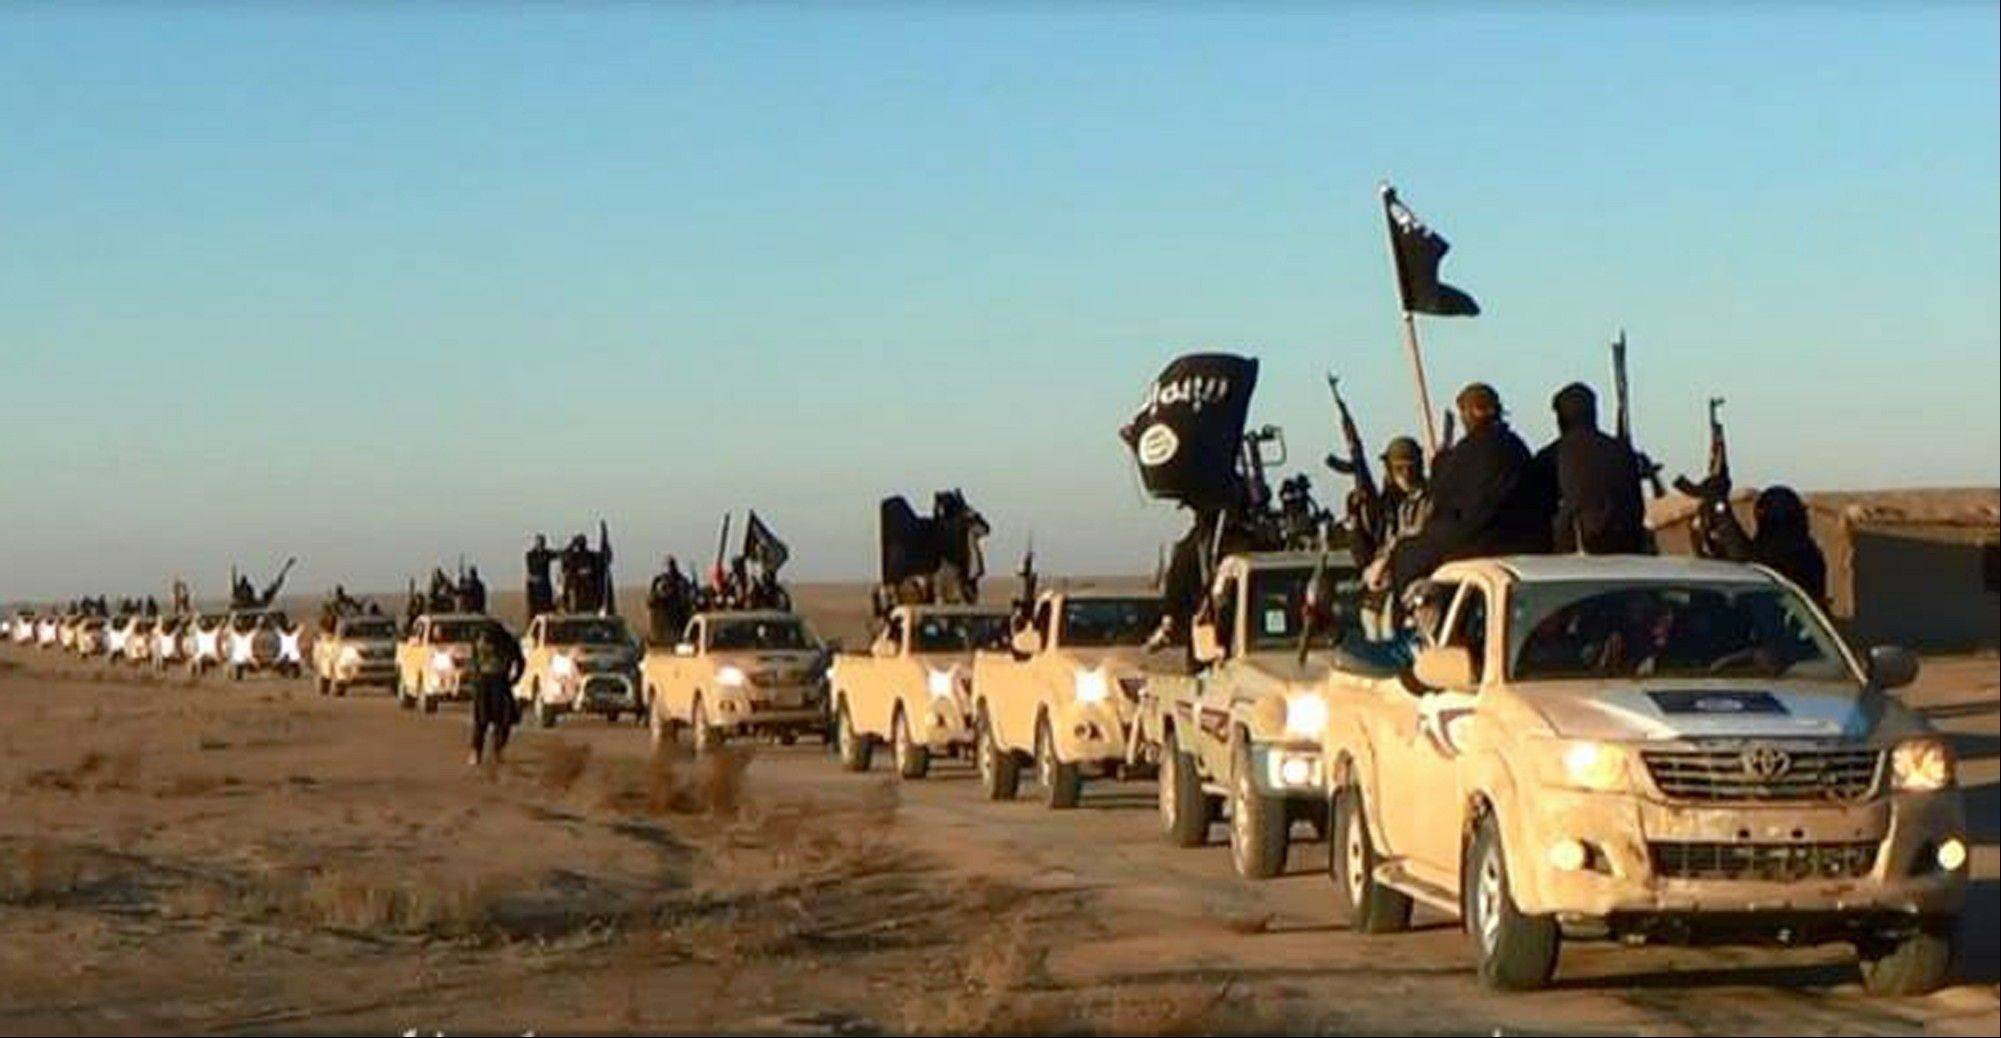 This image posted on a militant website on Jan. 7 shows a convoy of vehicles and fighters from the al-Qaida linked Islamic State of Iraq and the Levant (ISIL) fighters in Iraq's Anbar Province.